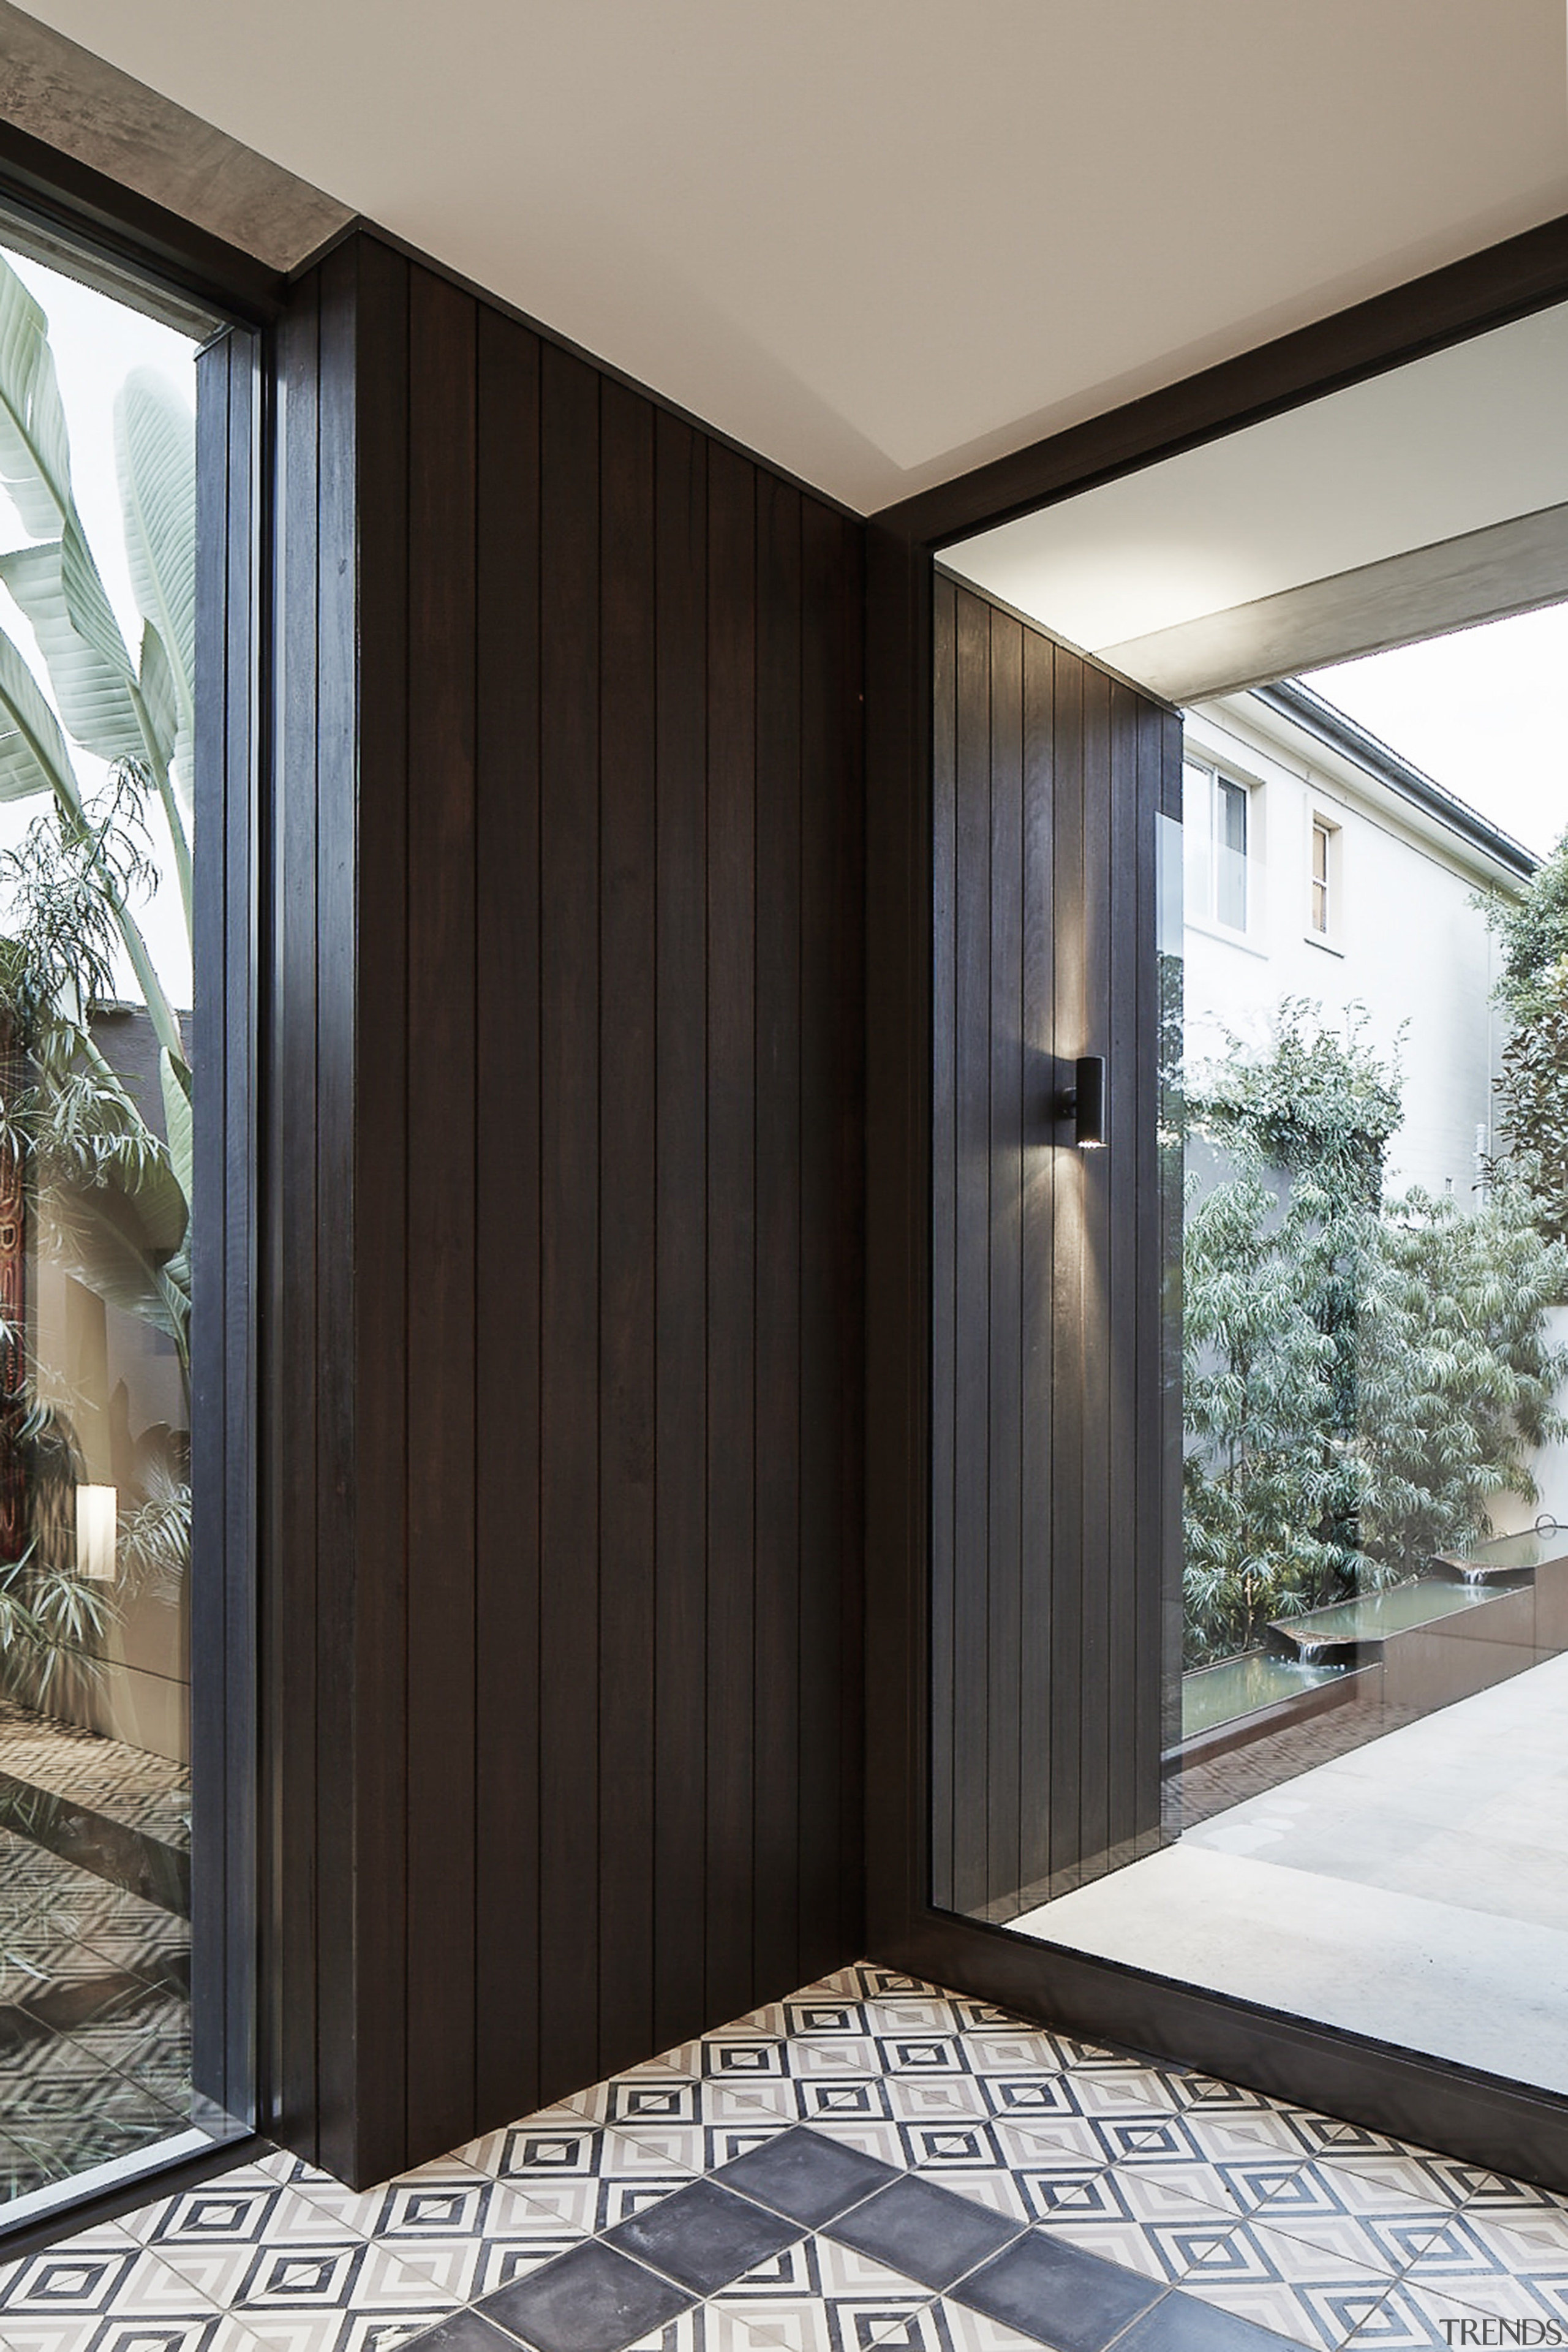 Repositioning the front door to the middle at architecture, door, facade, house, wood, black, gray